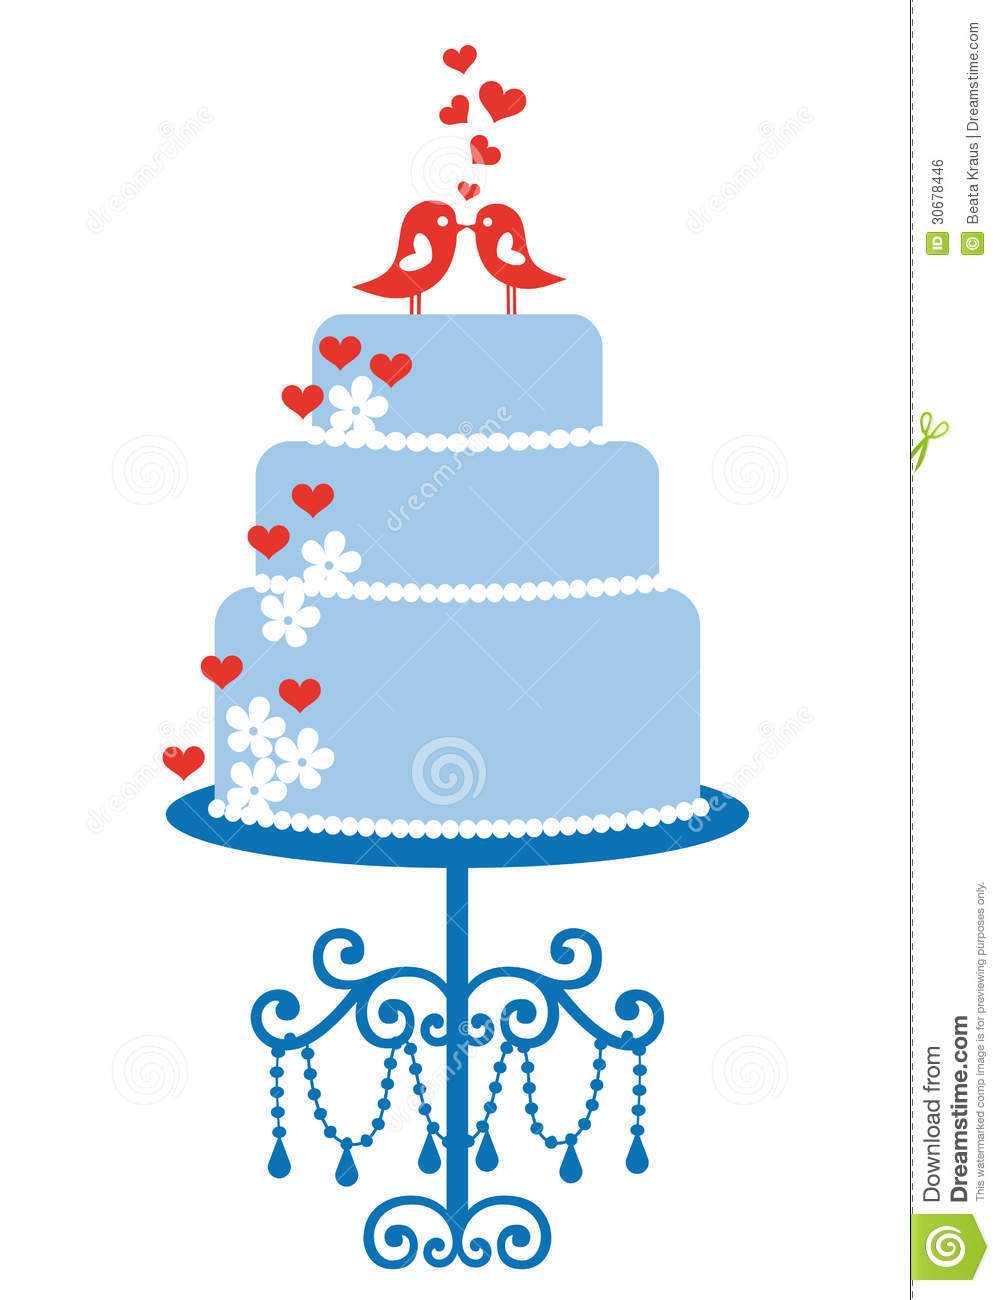 Wedding Cake With Birds, Vector Royalty Free Stock Image - Image ...